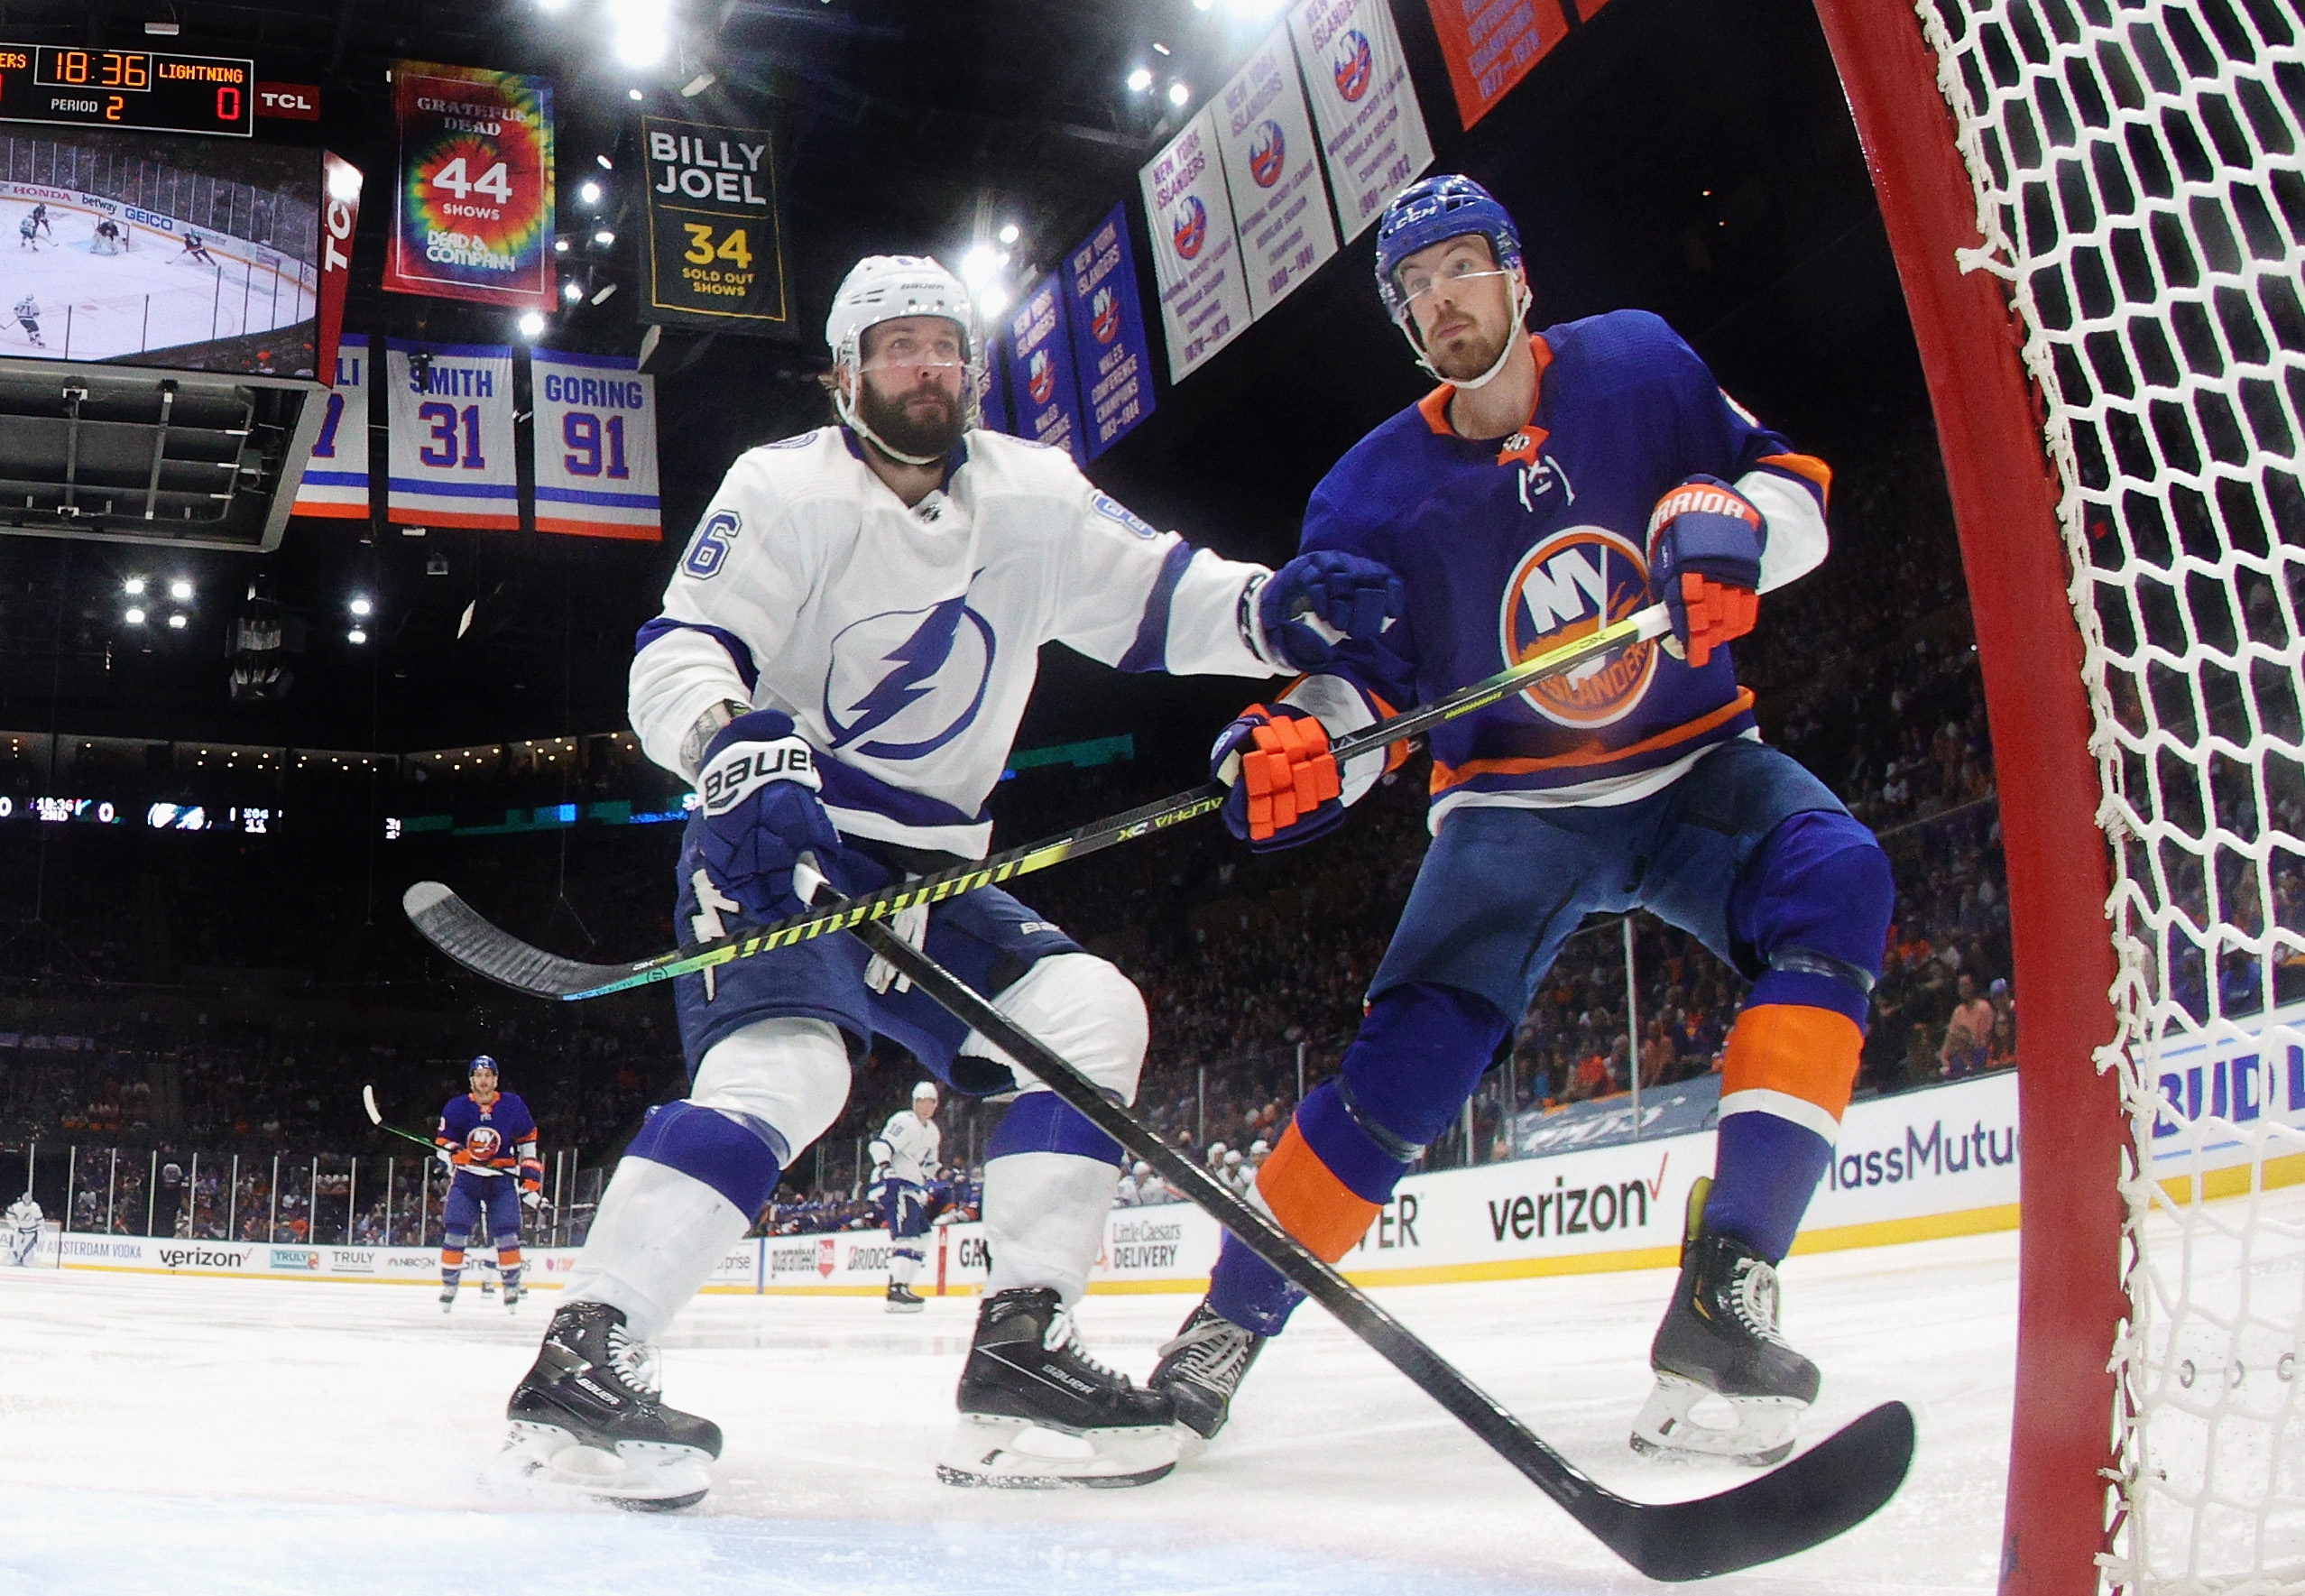 Nikita Kucherov #86 of the Tampa Bay Lightning skates against Scott Mayfield #24 of the New York Islanders in Game Four of the Stanley Cup Semifinals during the 2021 Stanley Cup Playoffs at the Nassau Coliseum on June 19, 2021 in Uniondale, New York. The Islanders defeated the Lightning 3-2.